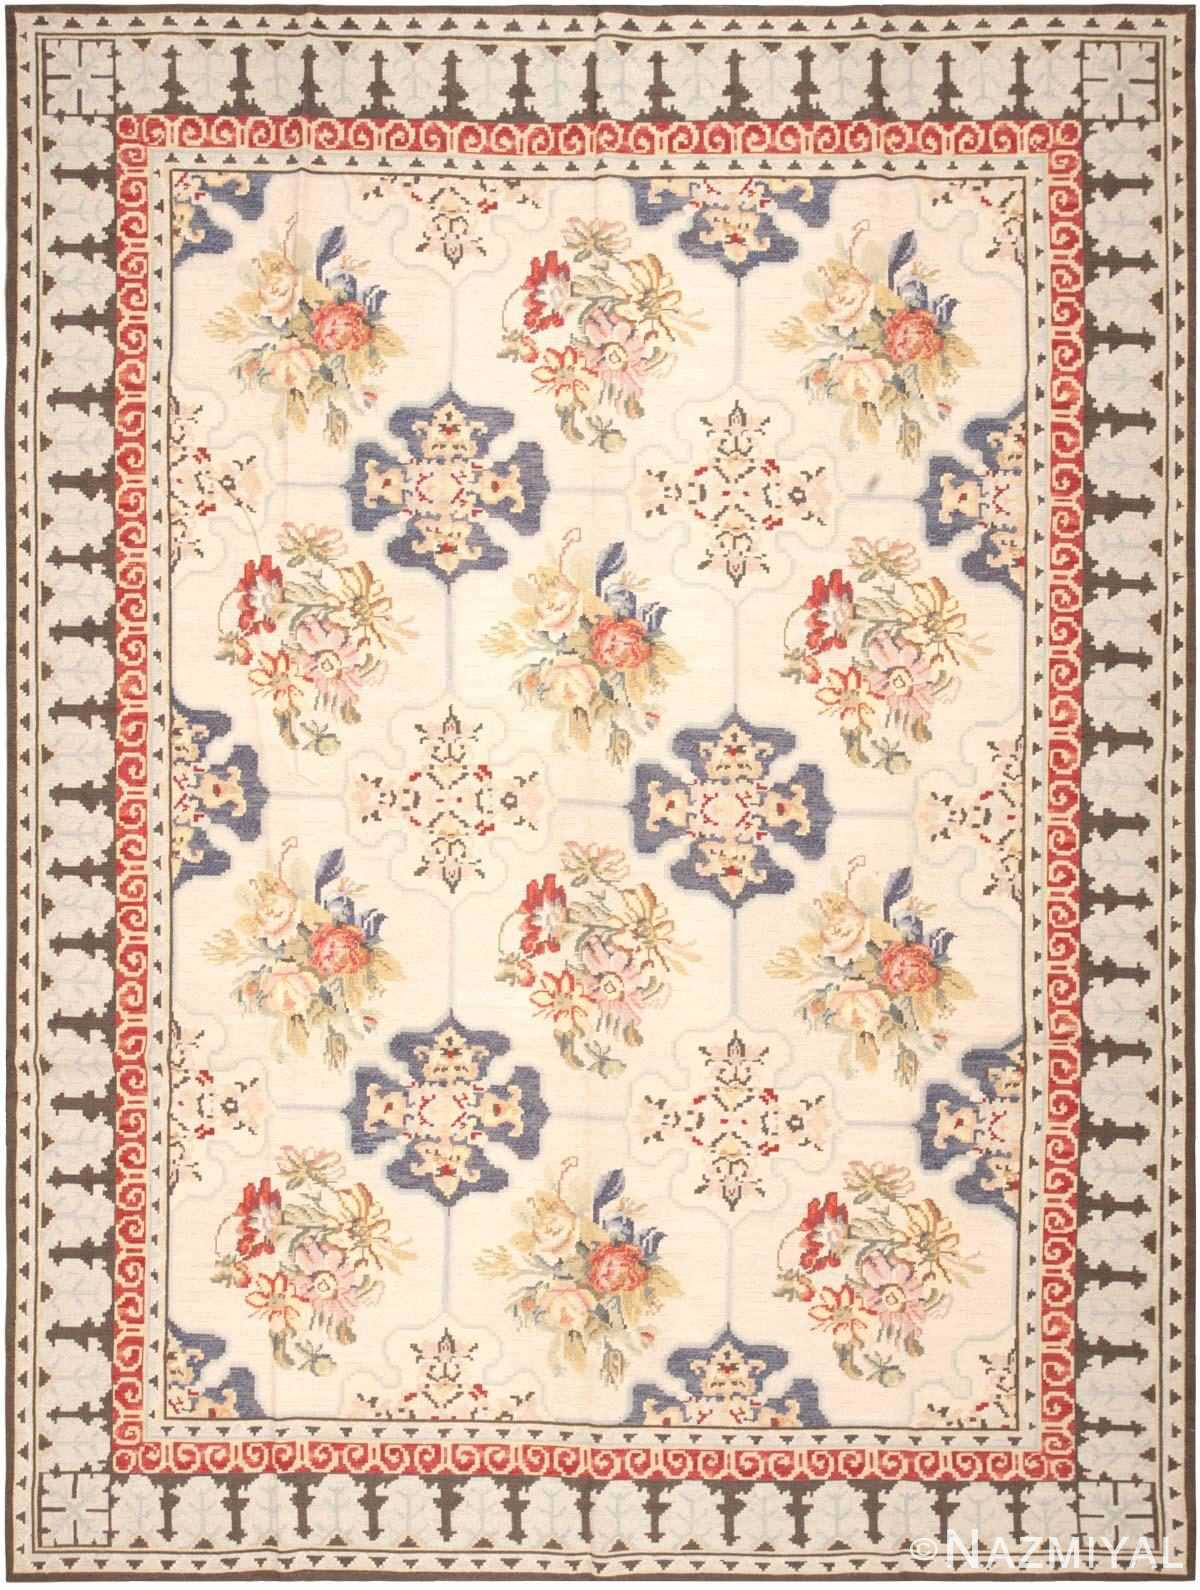 Modern Chinese Needlepoint Carpet 44706 Nazmiyal